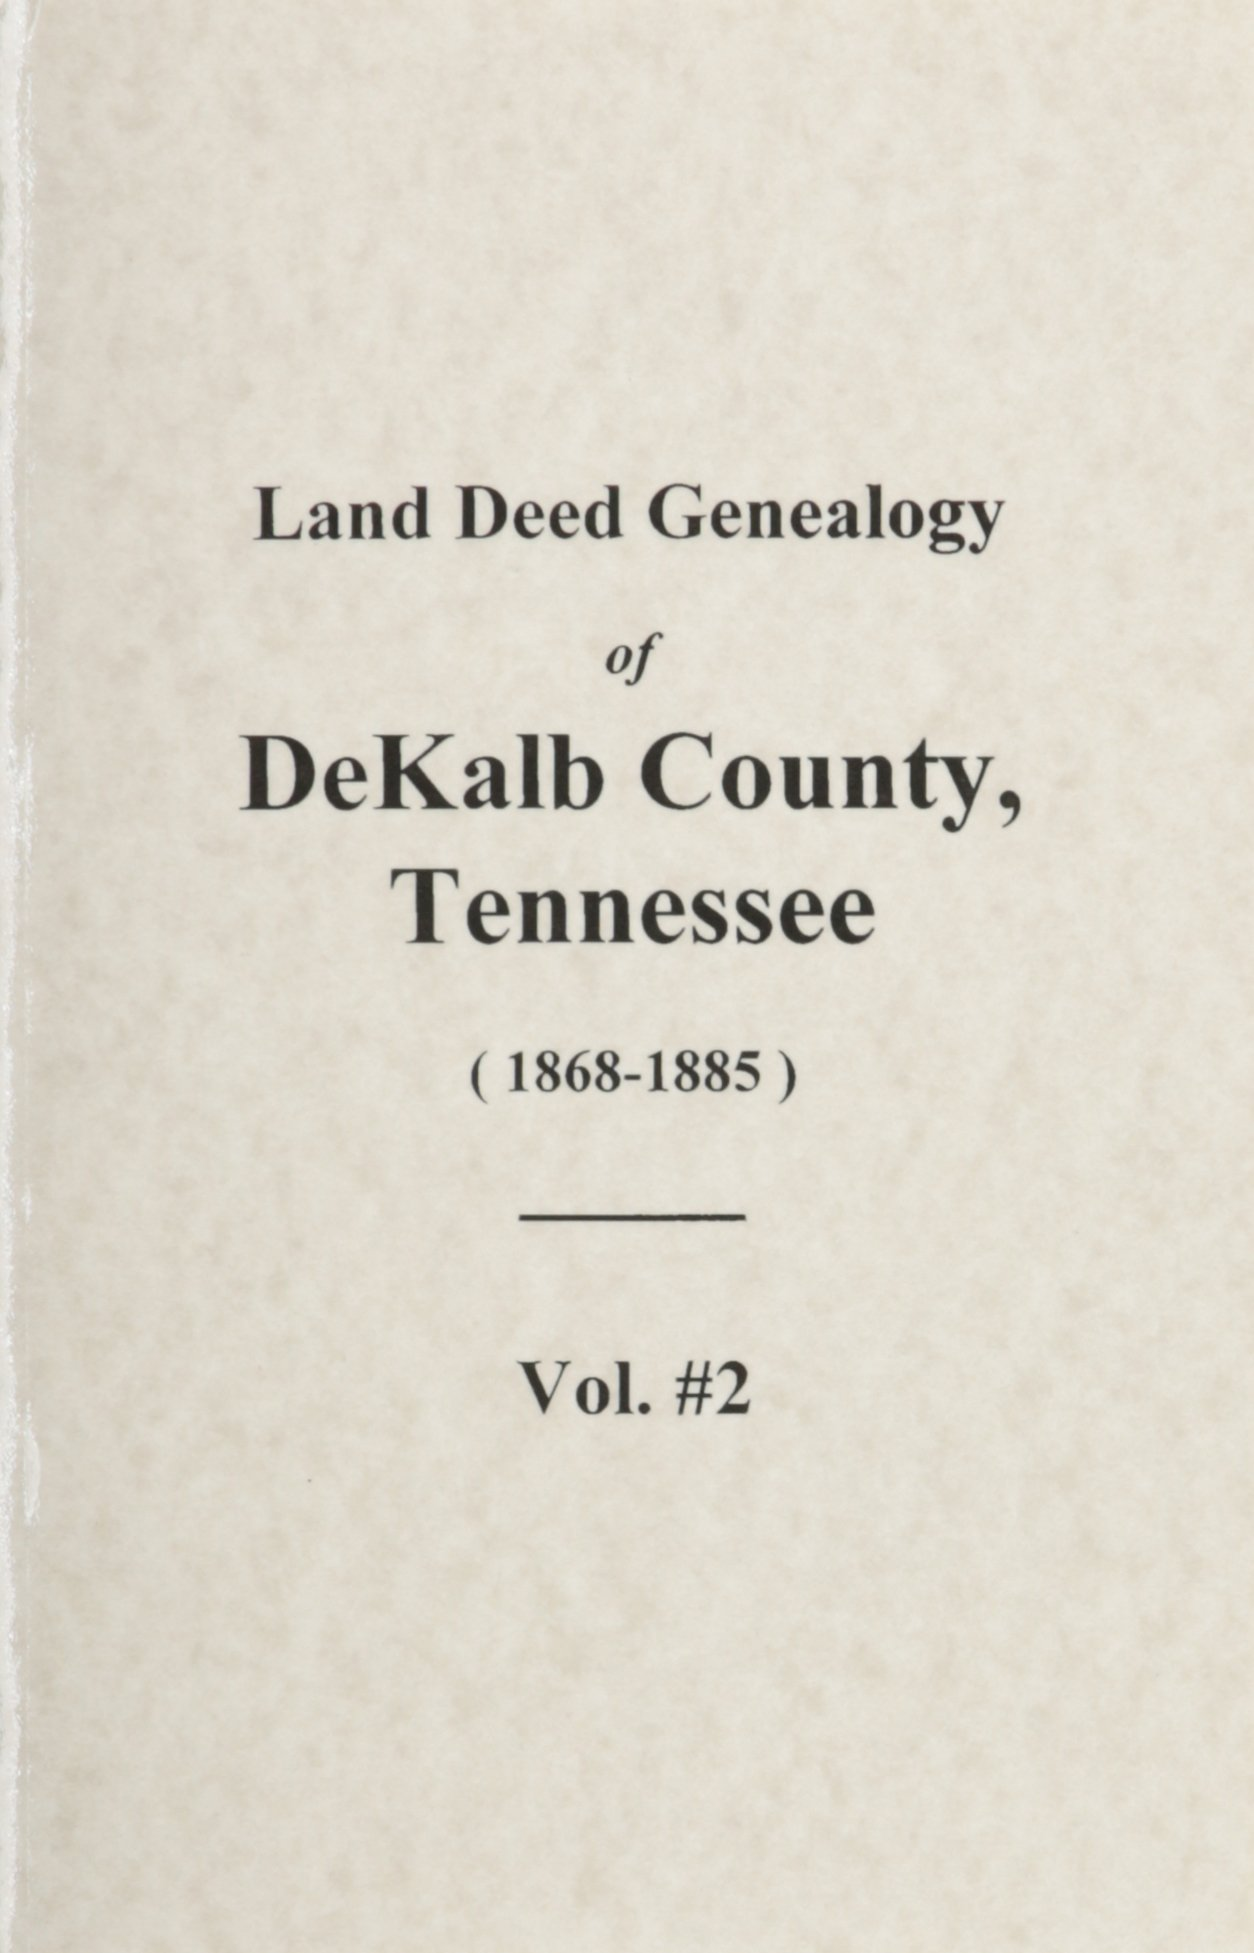 Download DeKalb County, TN. Land Deed Genealogy, 1868-1885 (Vol. #2) pdf epub